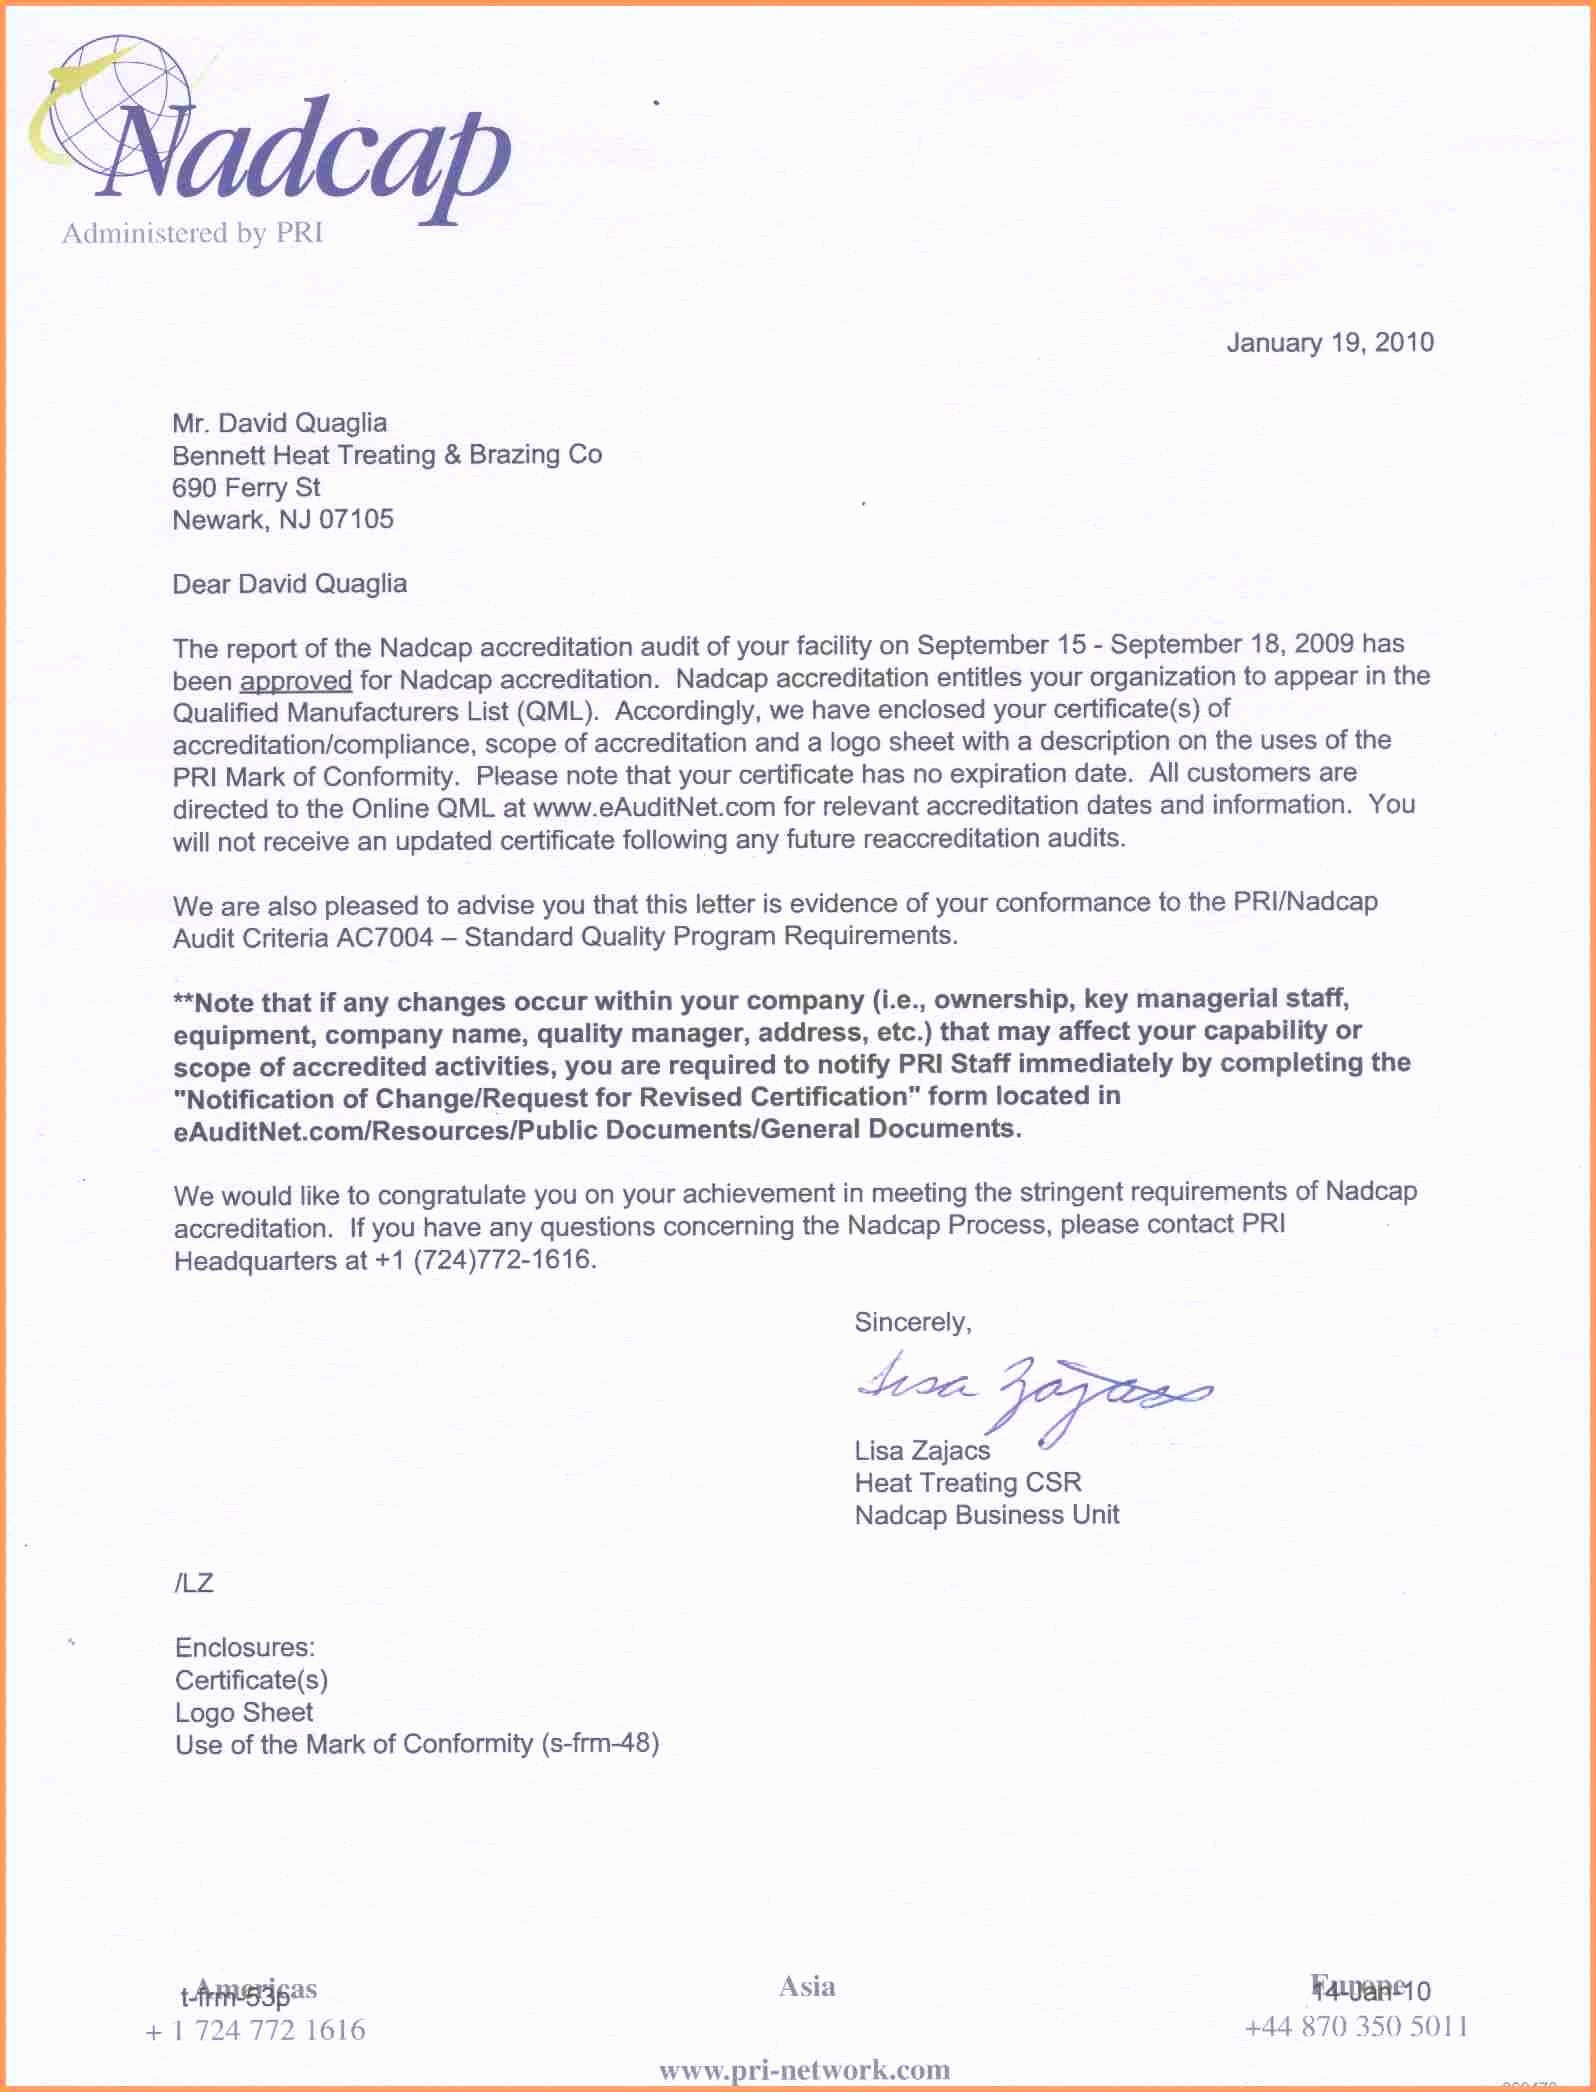 Lockheed Martin Address for Cover Letter Luxury Lockheed Martin Cover Letter Address 5